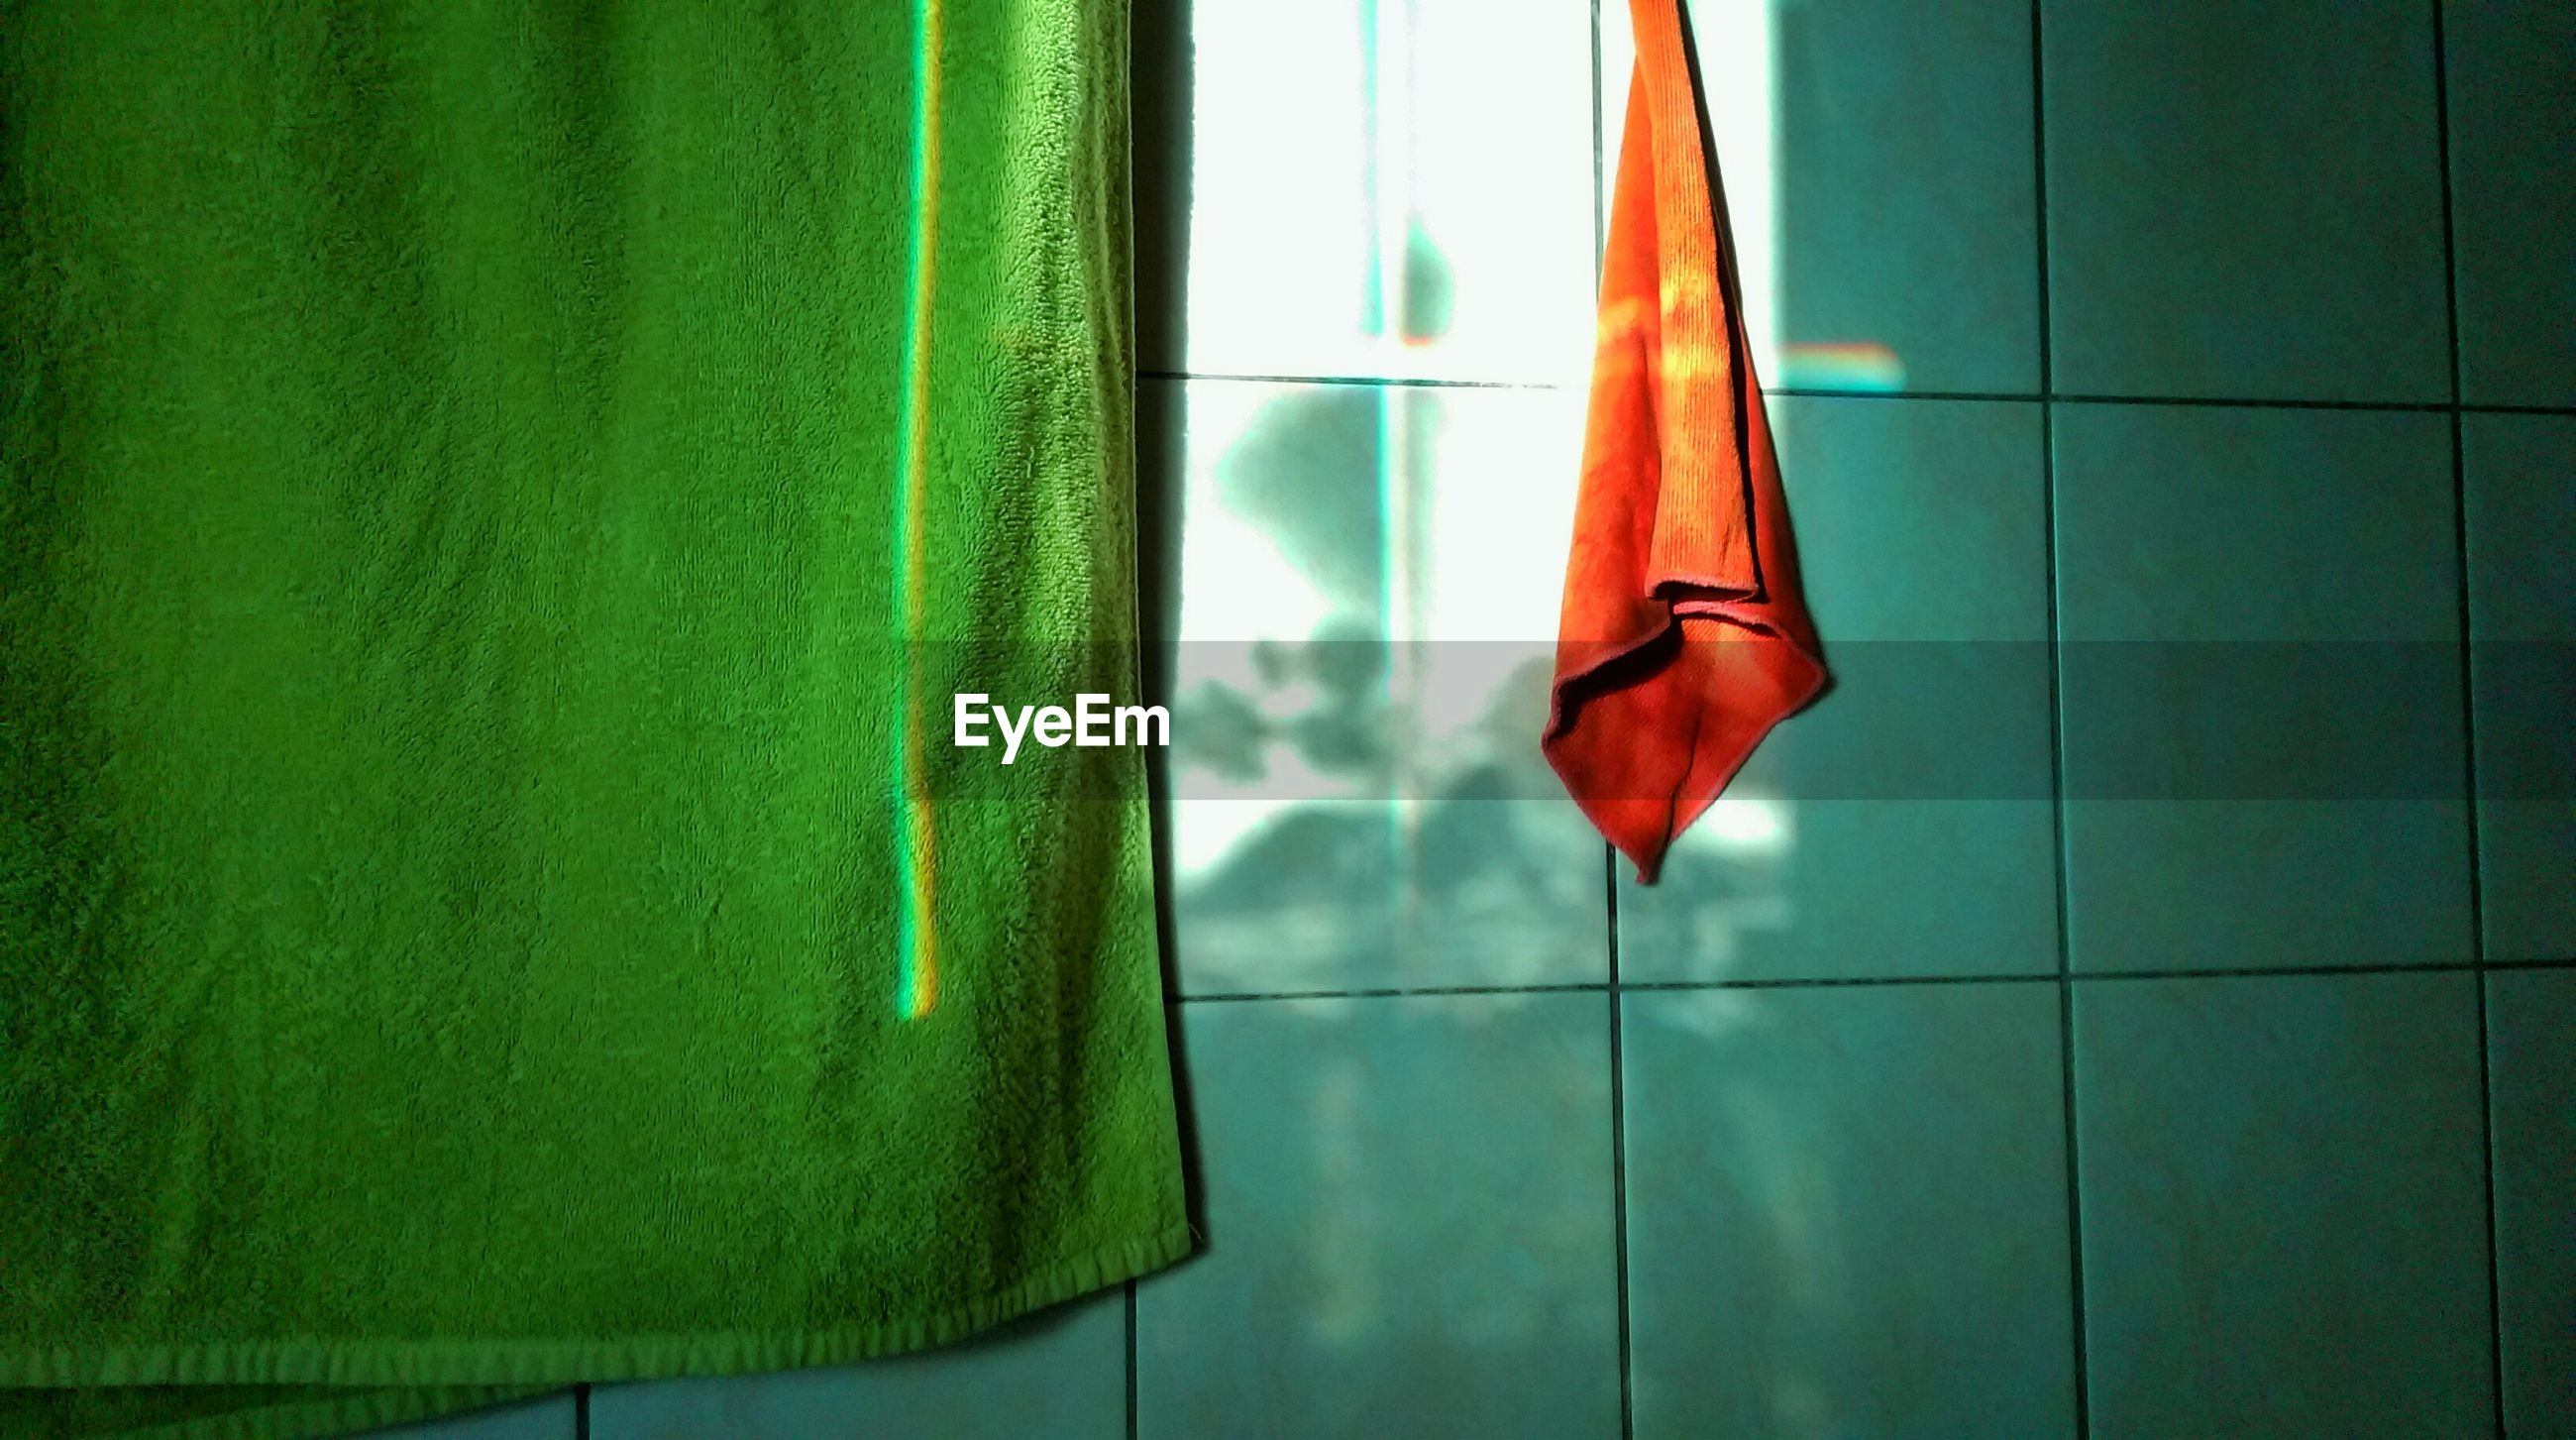 Close-up of towel against tiled wall